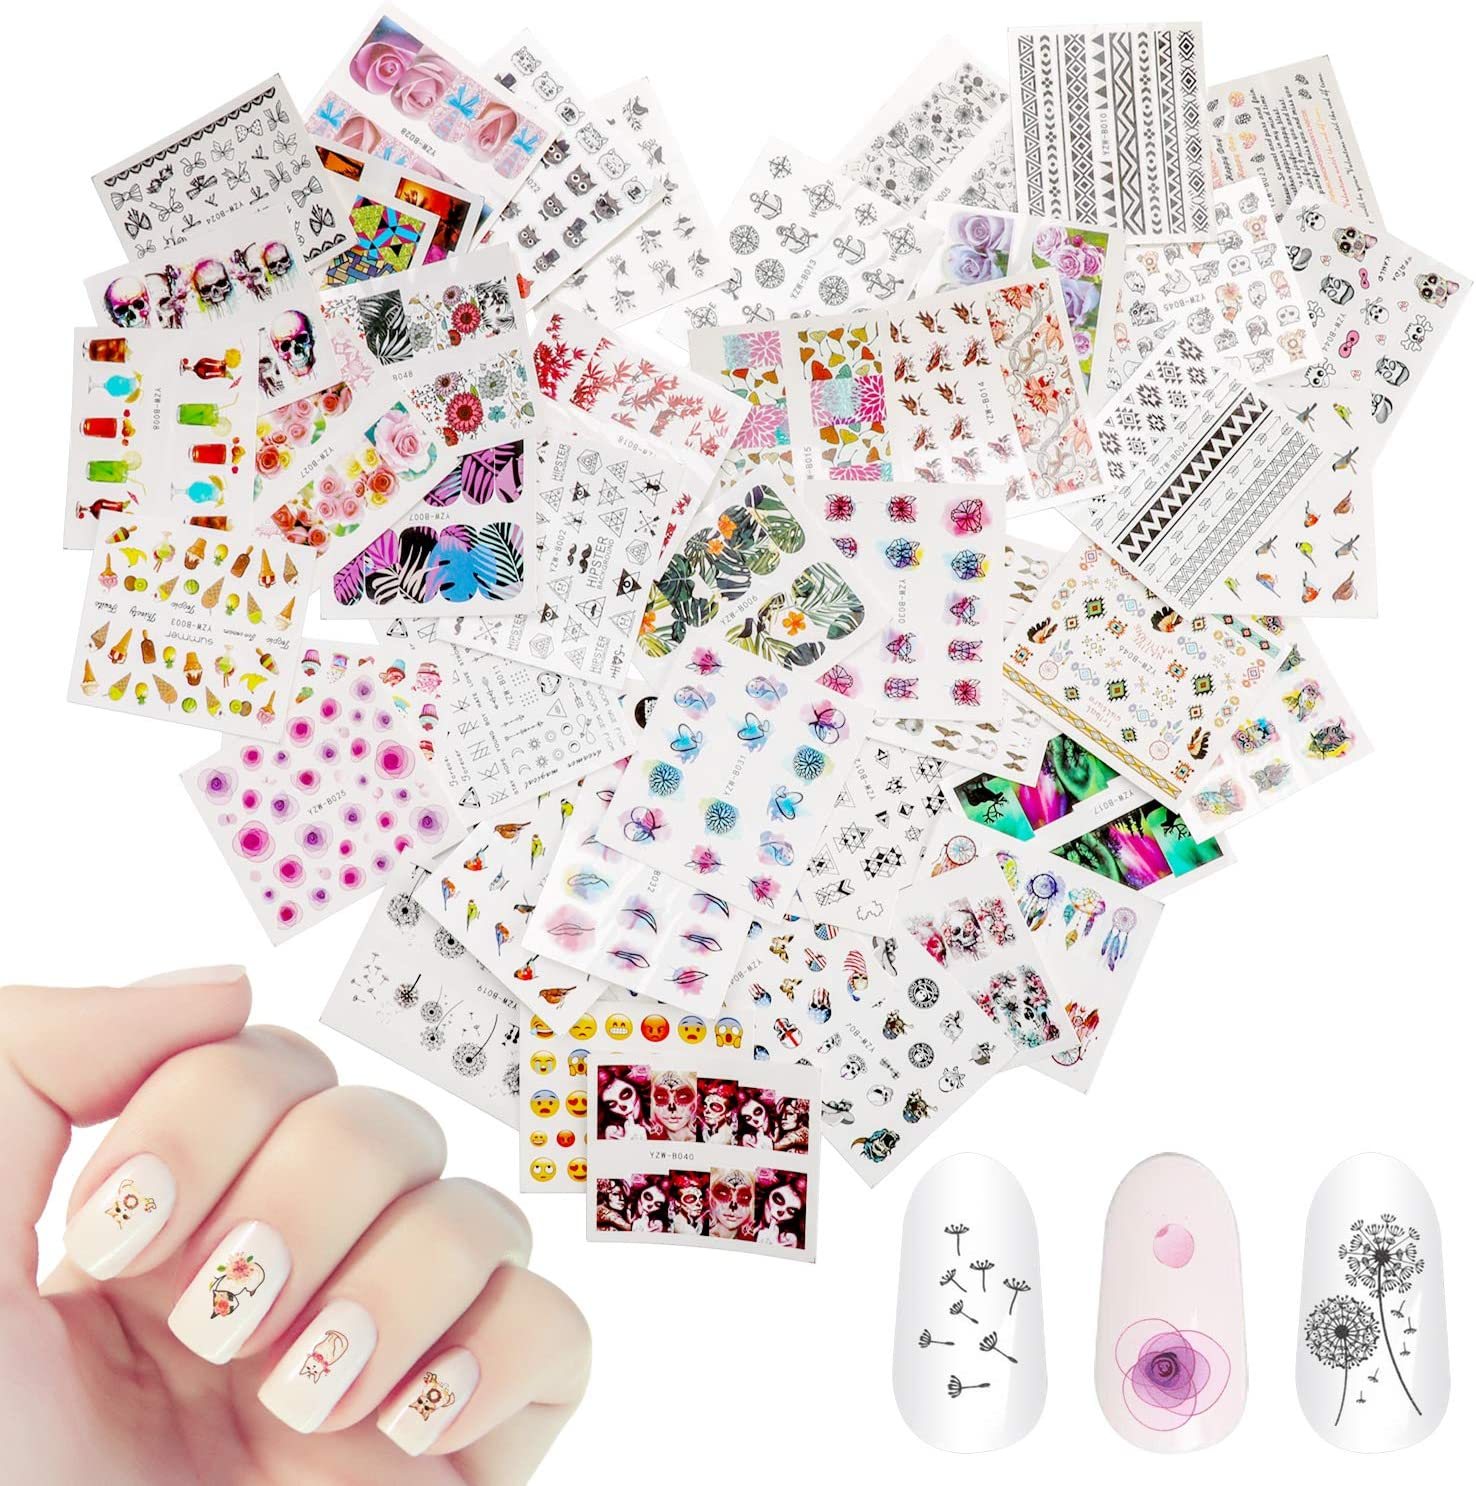 48 Sheets Mixed Nail Art Stickers, AKWOX Nail Art Water Transfer Sticker Home Manicure Decals with Flowers Feather Animal Cat for Women Toenails and Fingernails Decor DIY Nail Tips